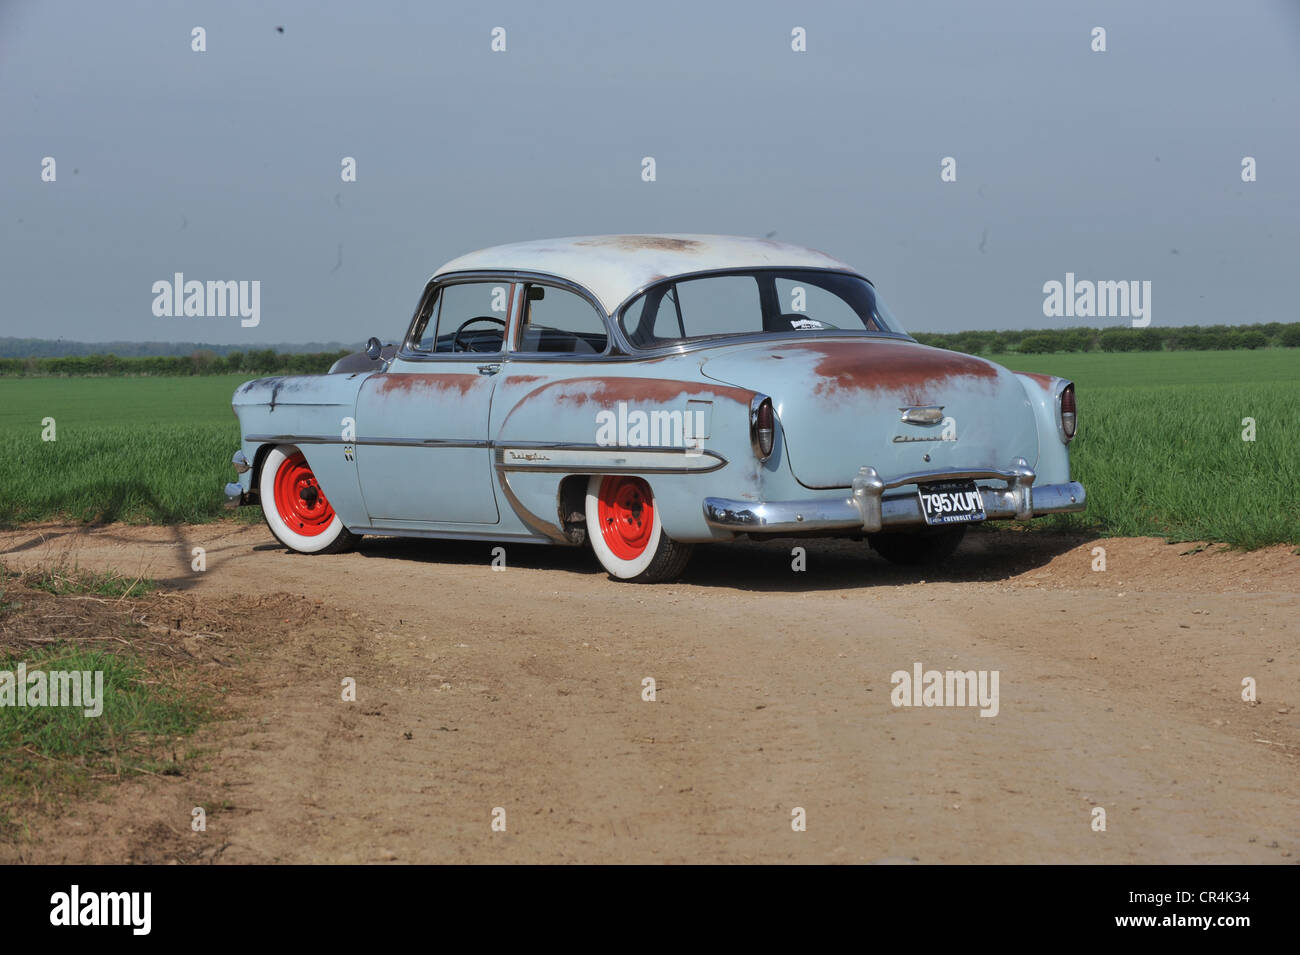 All American Chevy >> Rat look 1954 Chevrolet Bel air classic sun bleached American car Stock Photo, Royalty Free ...